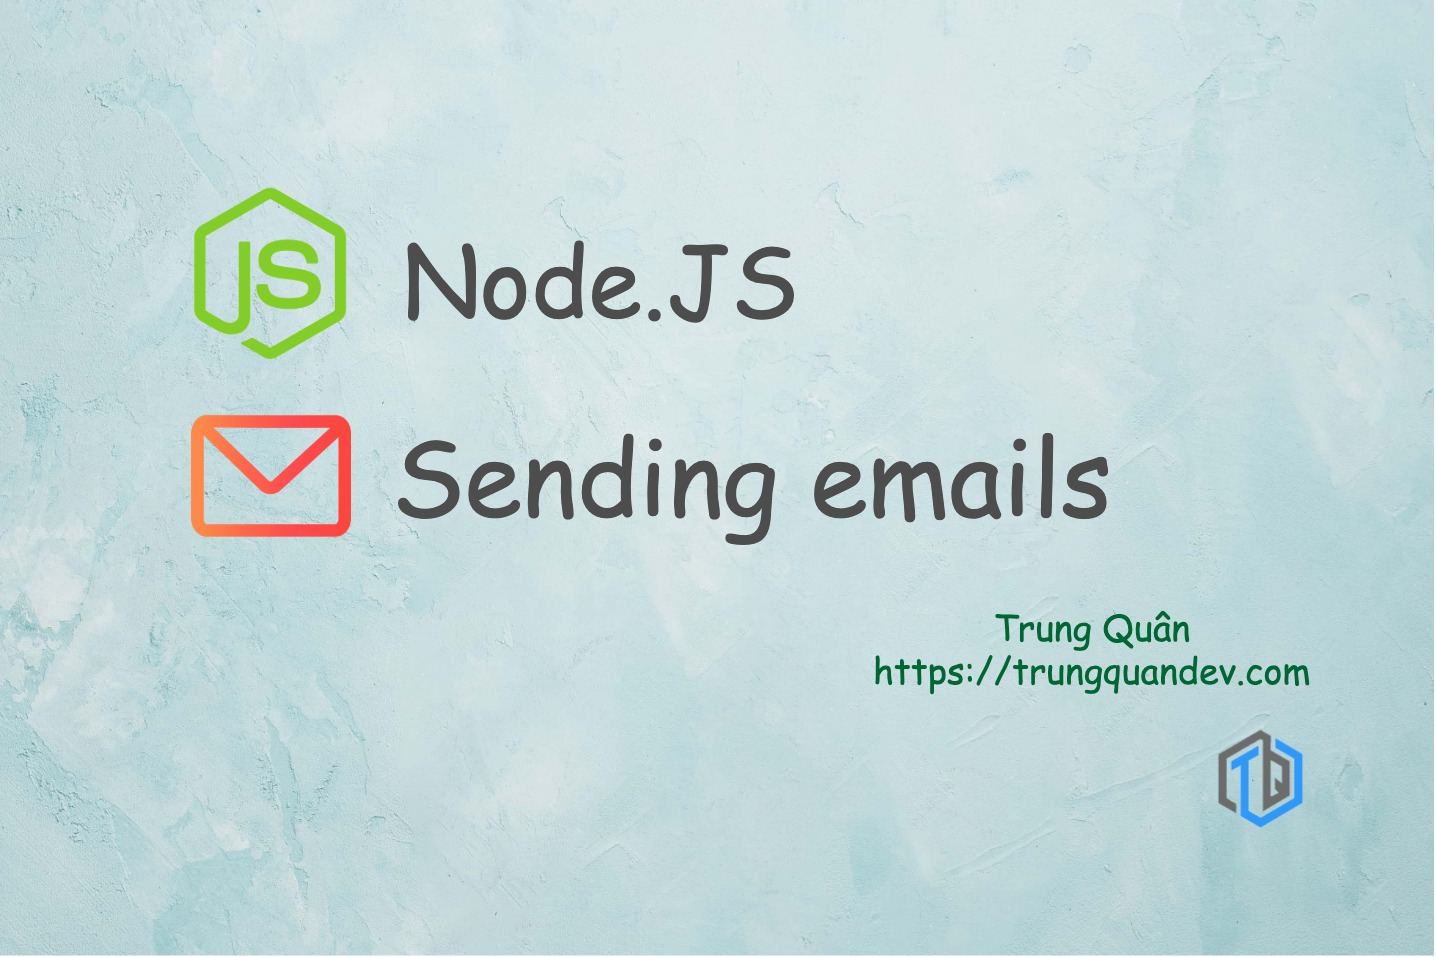 nodejs-send-email-trungquandev-feature-image